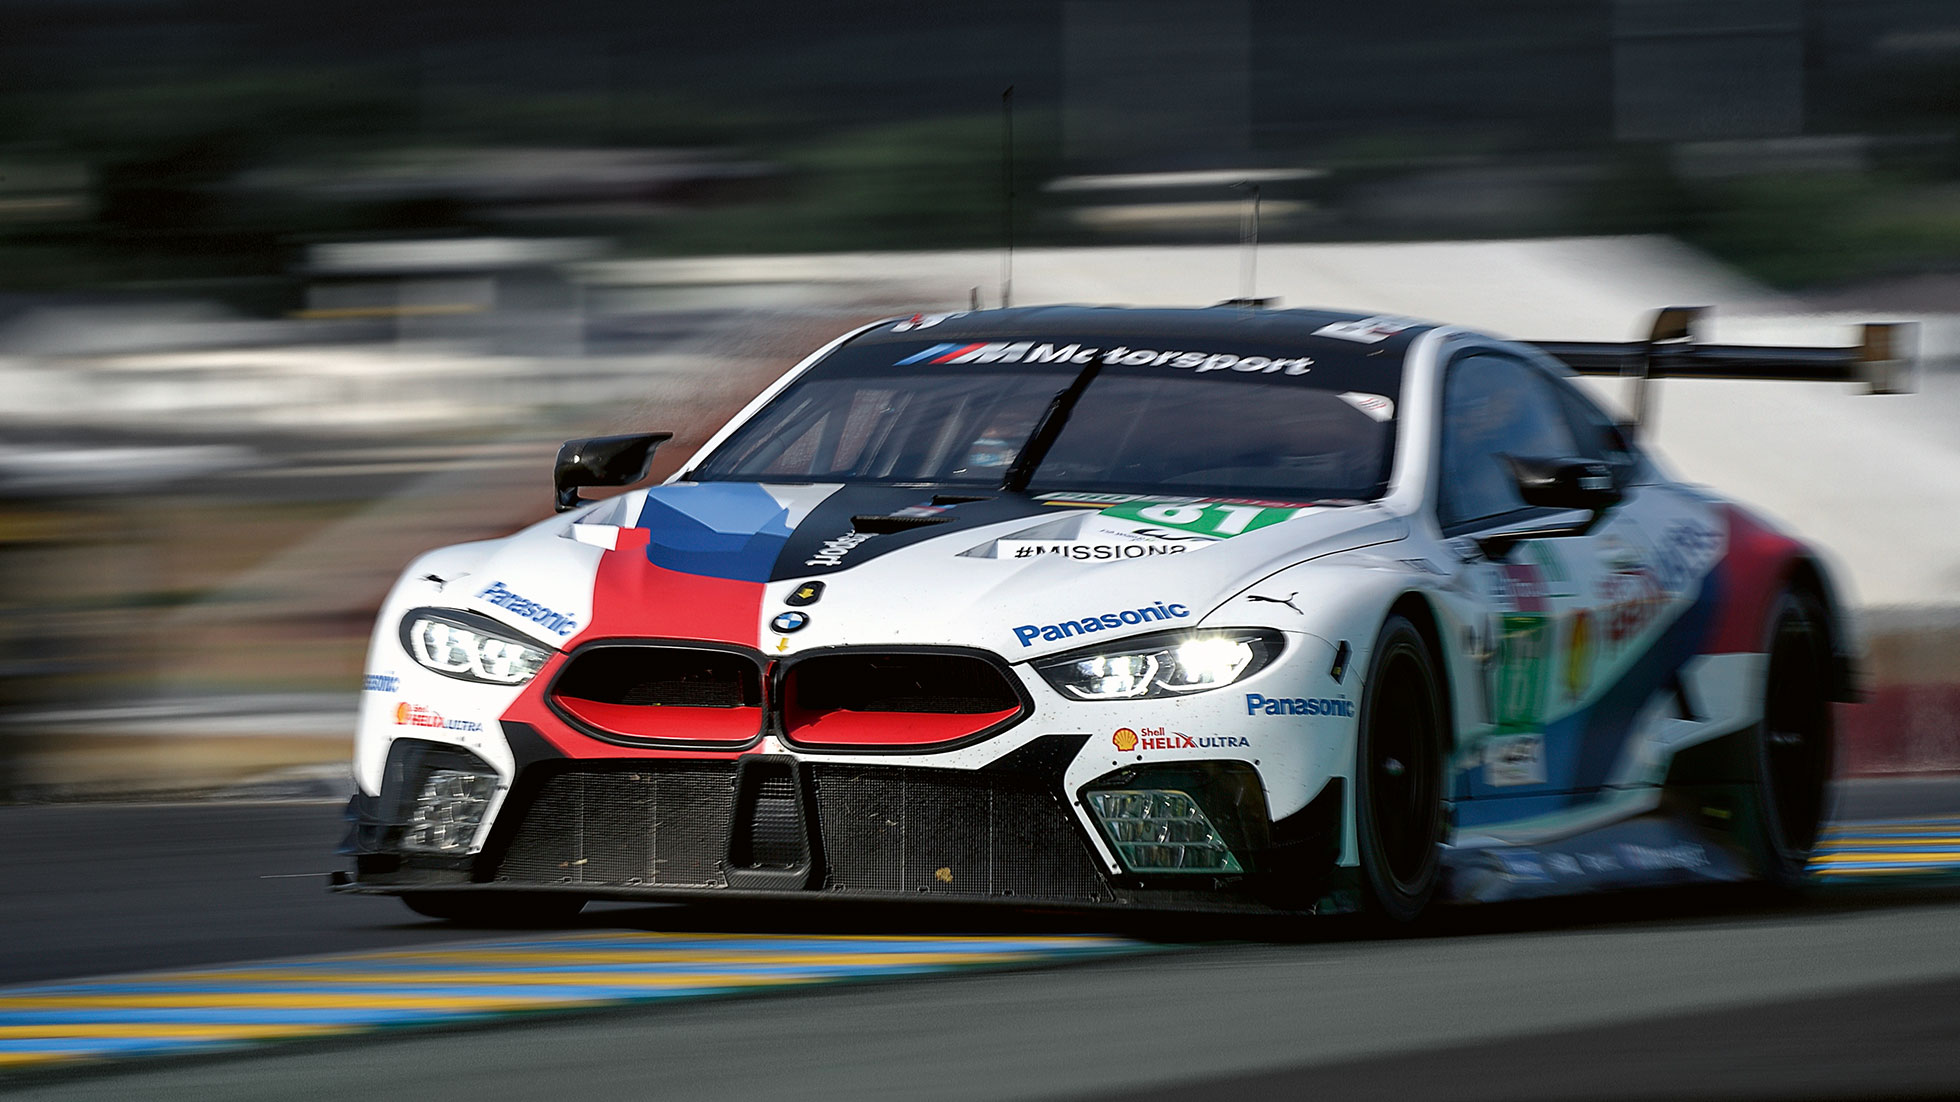 The picture shows the front of a BMW race car.